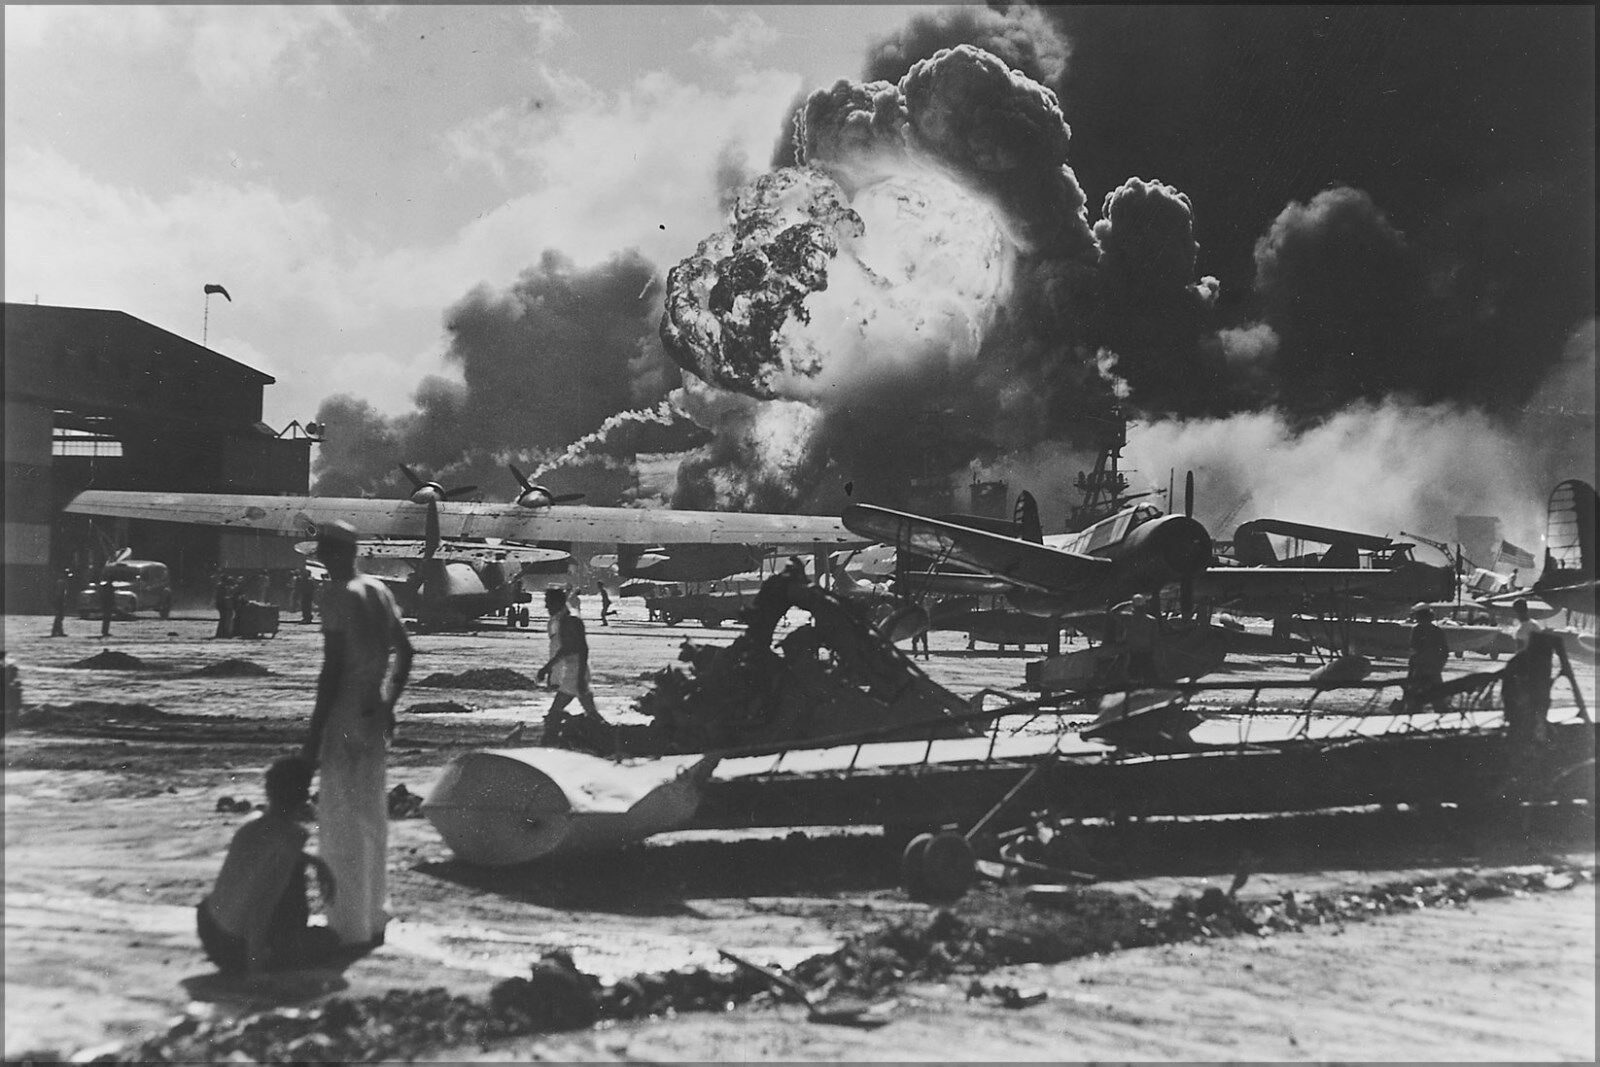 Poster, Many Größes; Naval Air Station At Pearl Harbor Following Japanese Attack